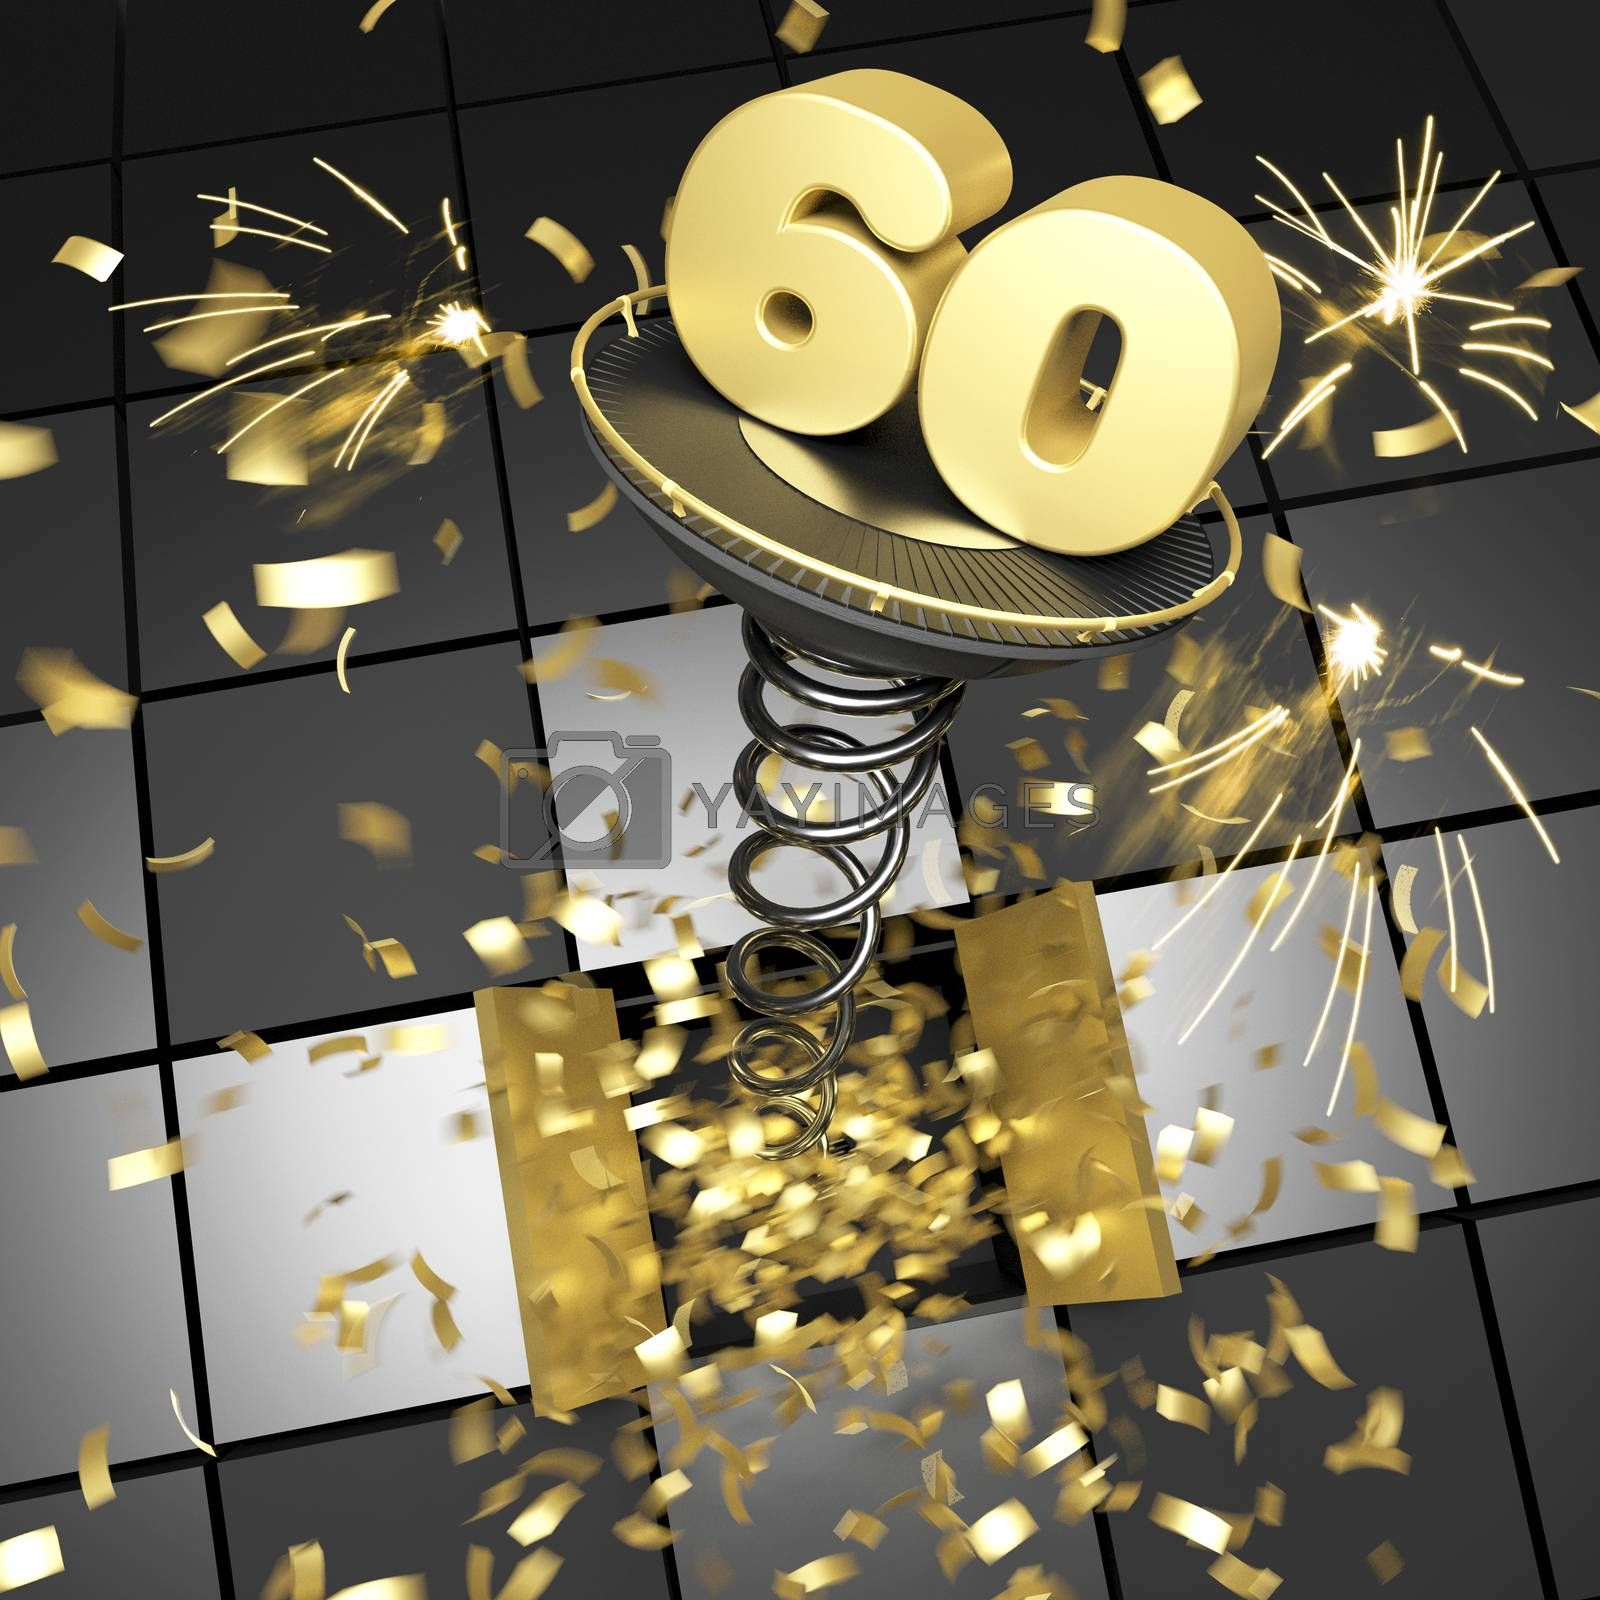 60th anniversary golden number on spring